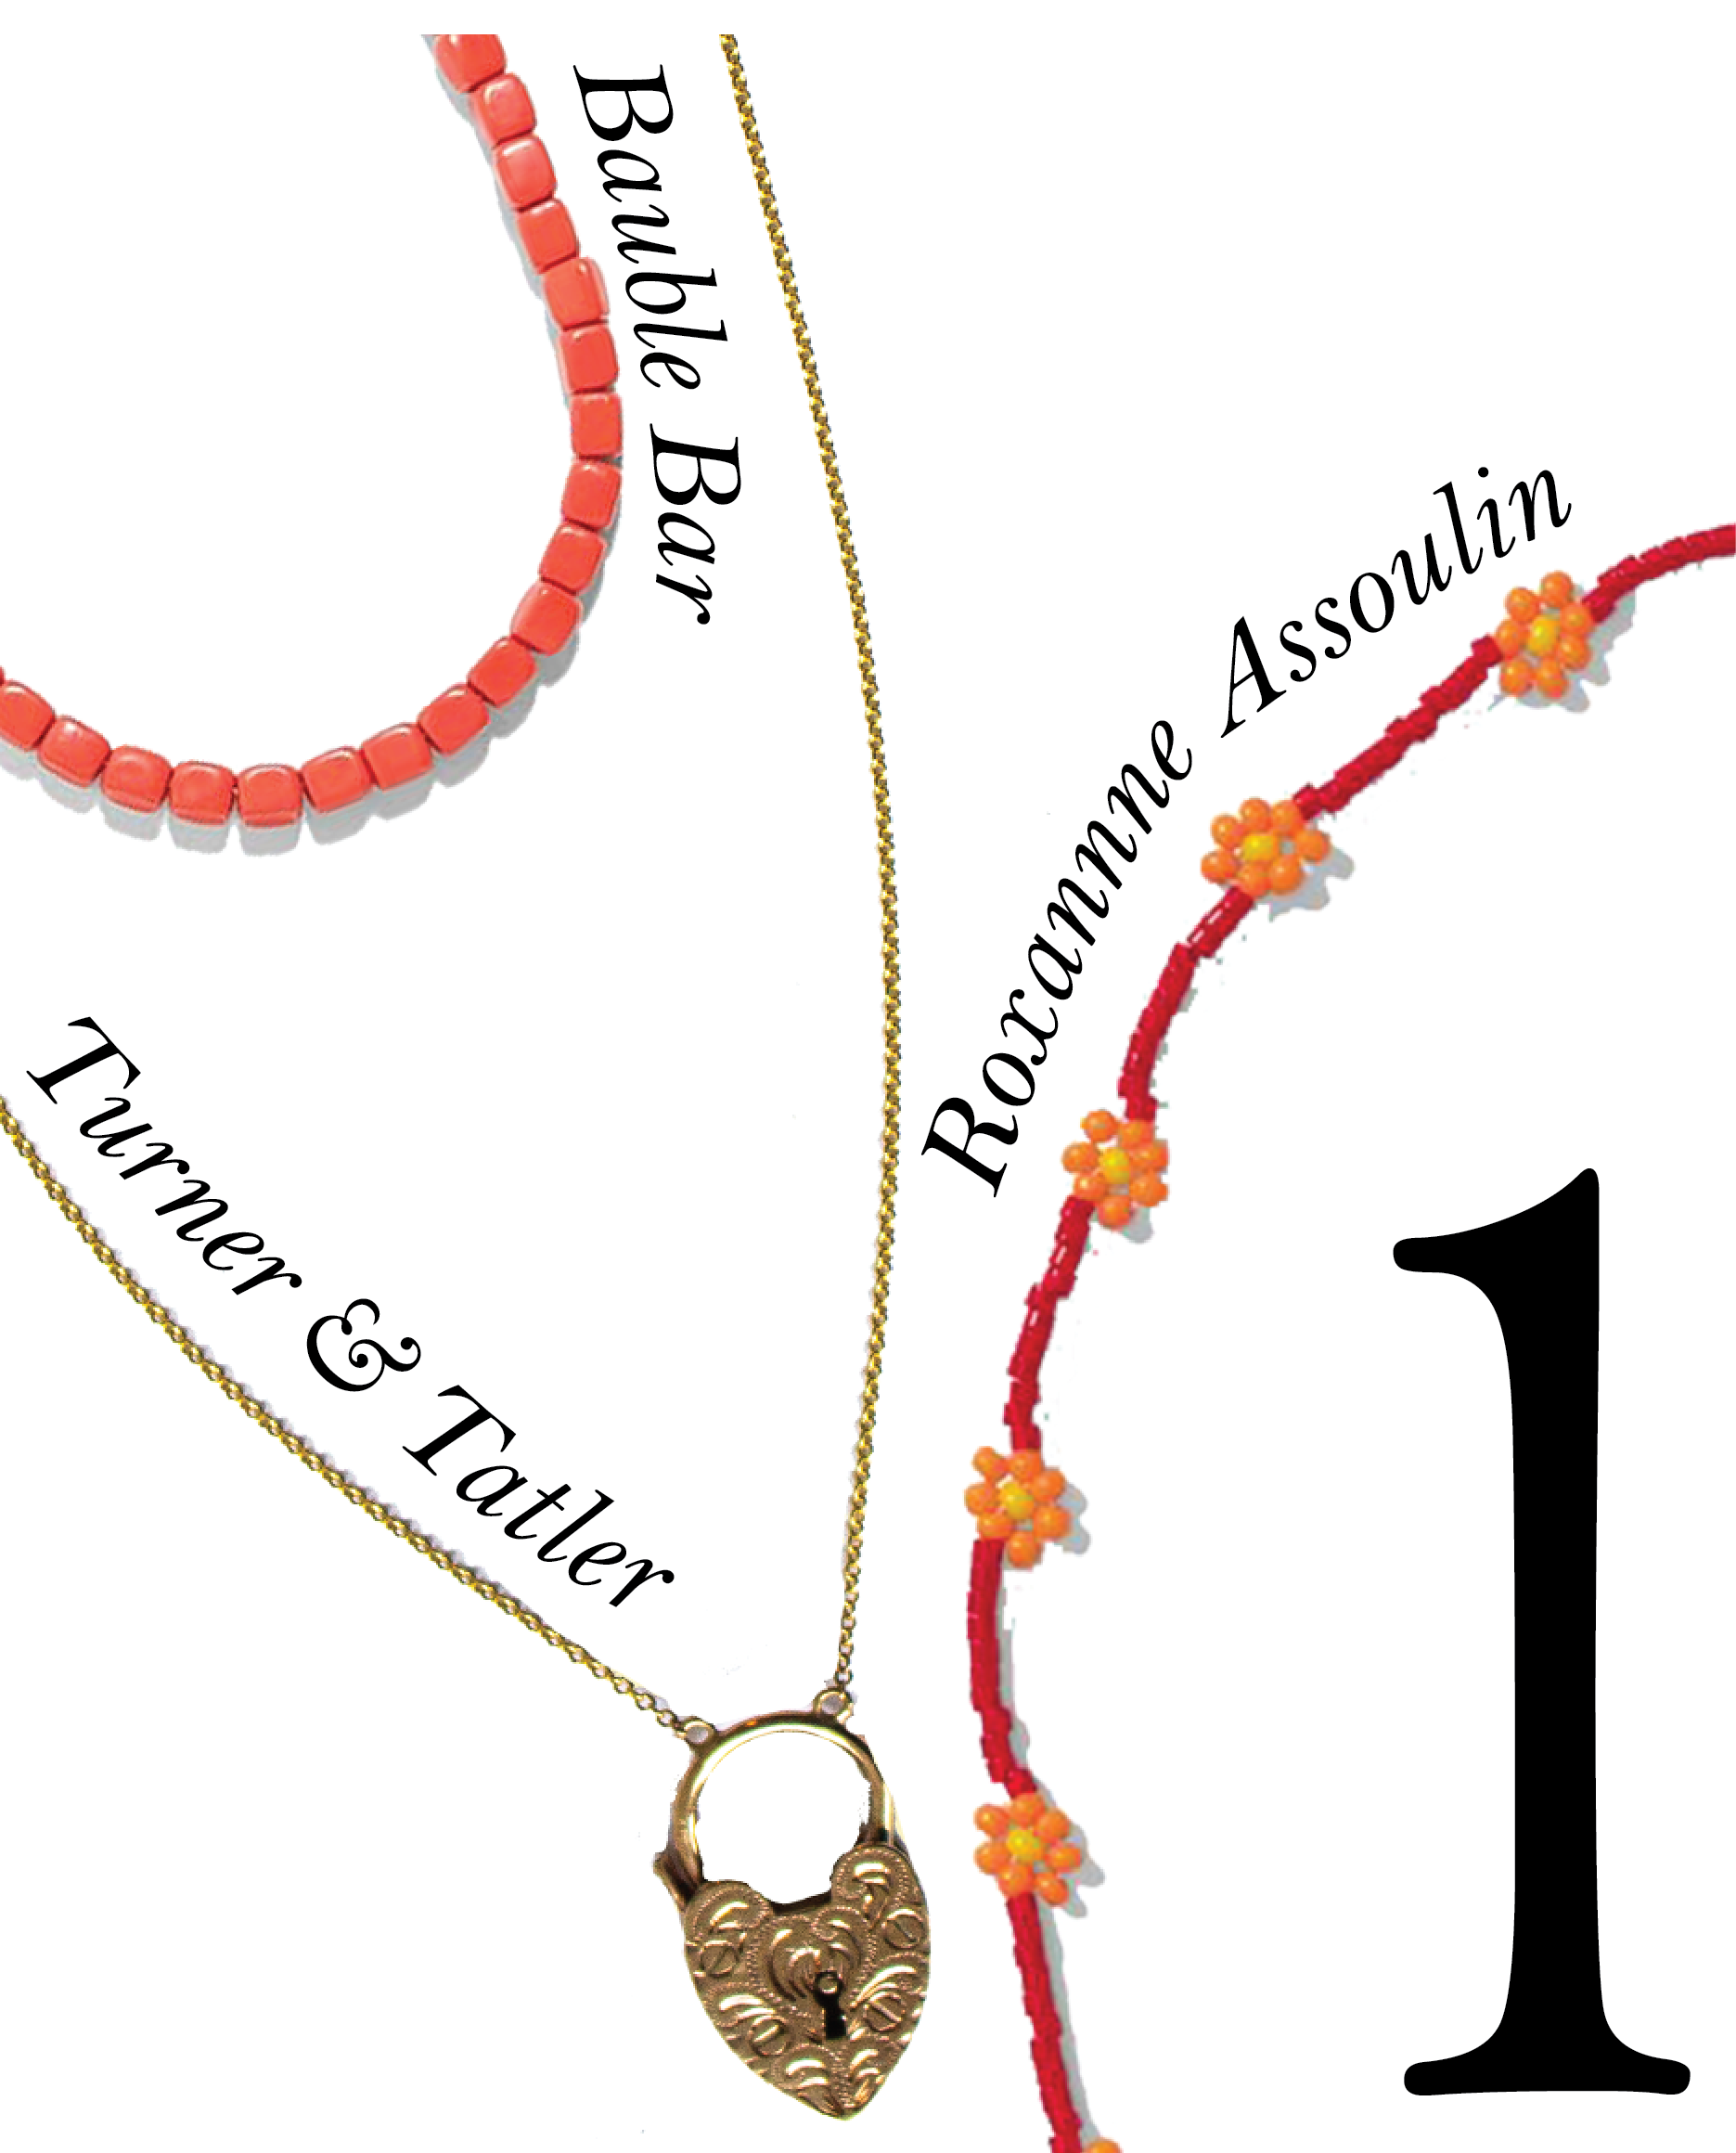 HAVE FUN THIS SUMMER WITH A STATEMENT NECKLACE - Decorate your décolletage with something vibrant and fun.